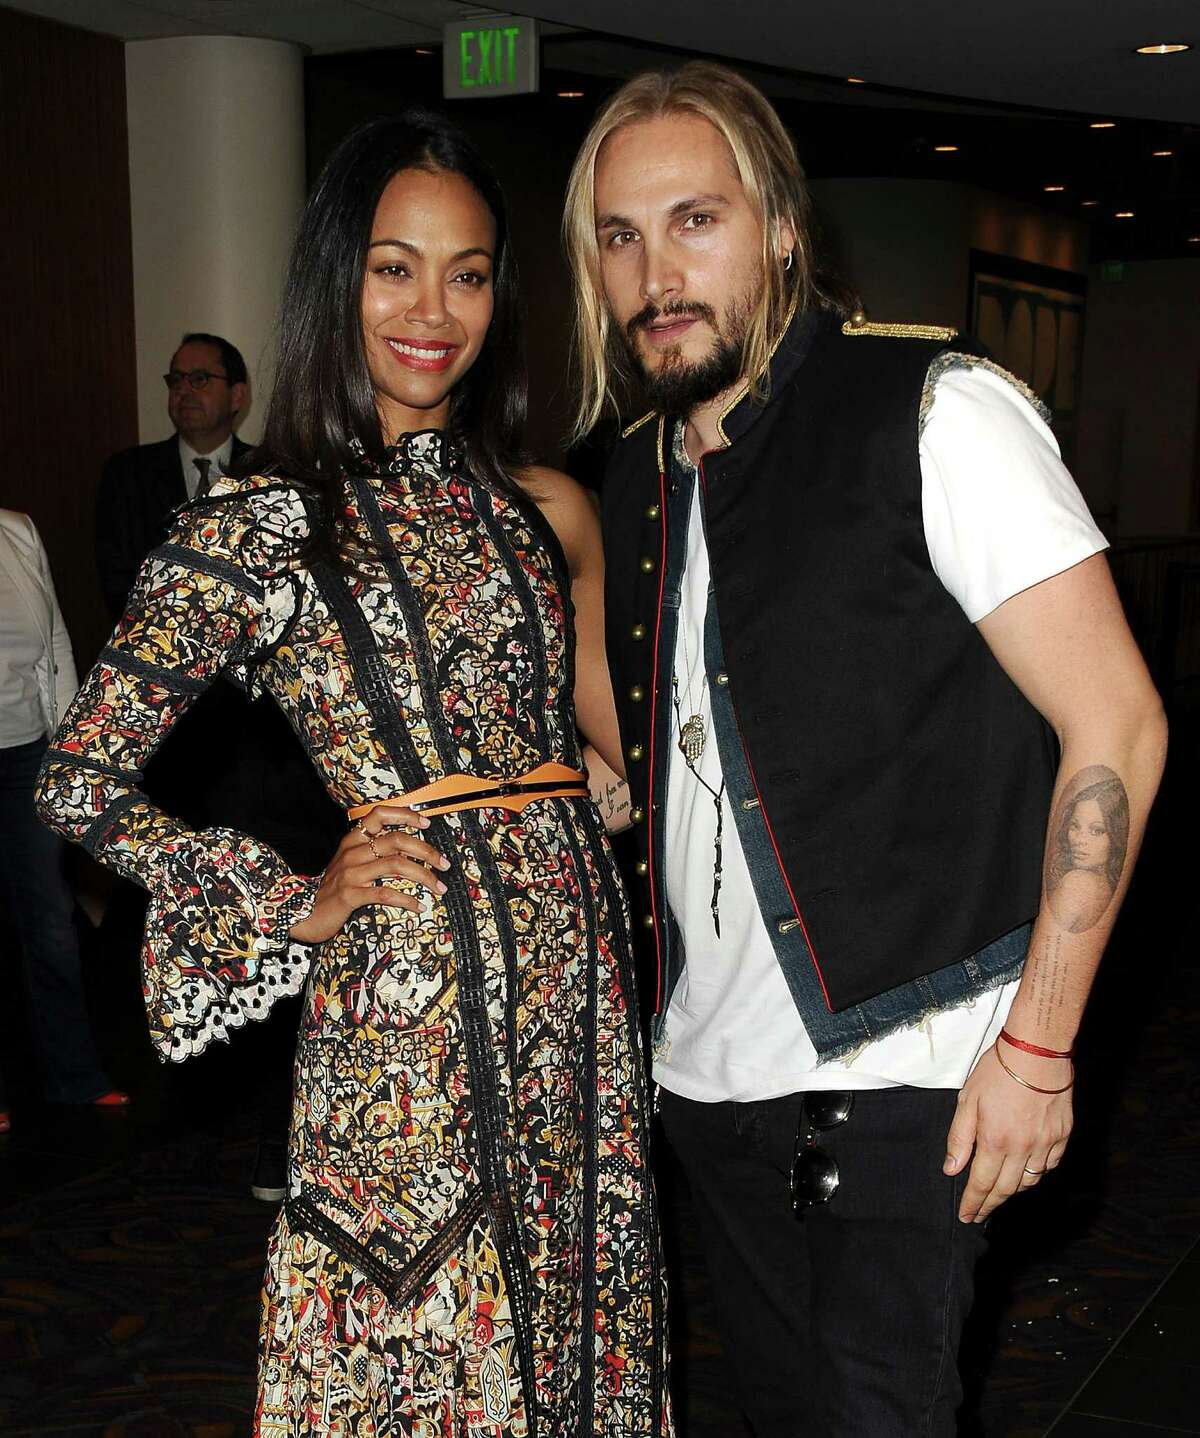 Zoe Saldana's husband, formerly known as Marco Perego, took his wife's last name.